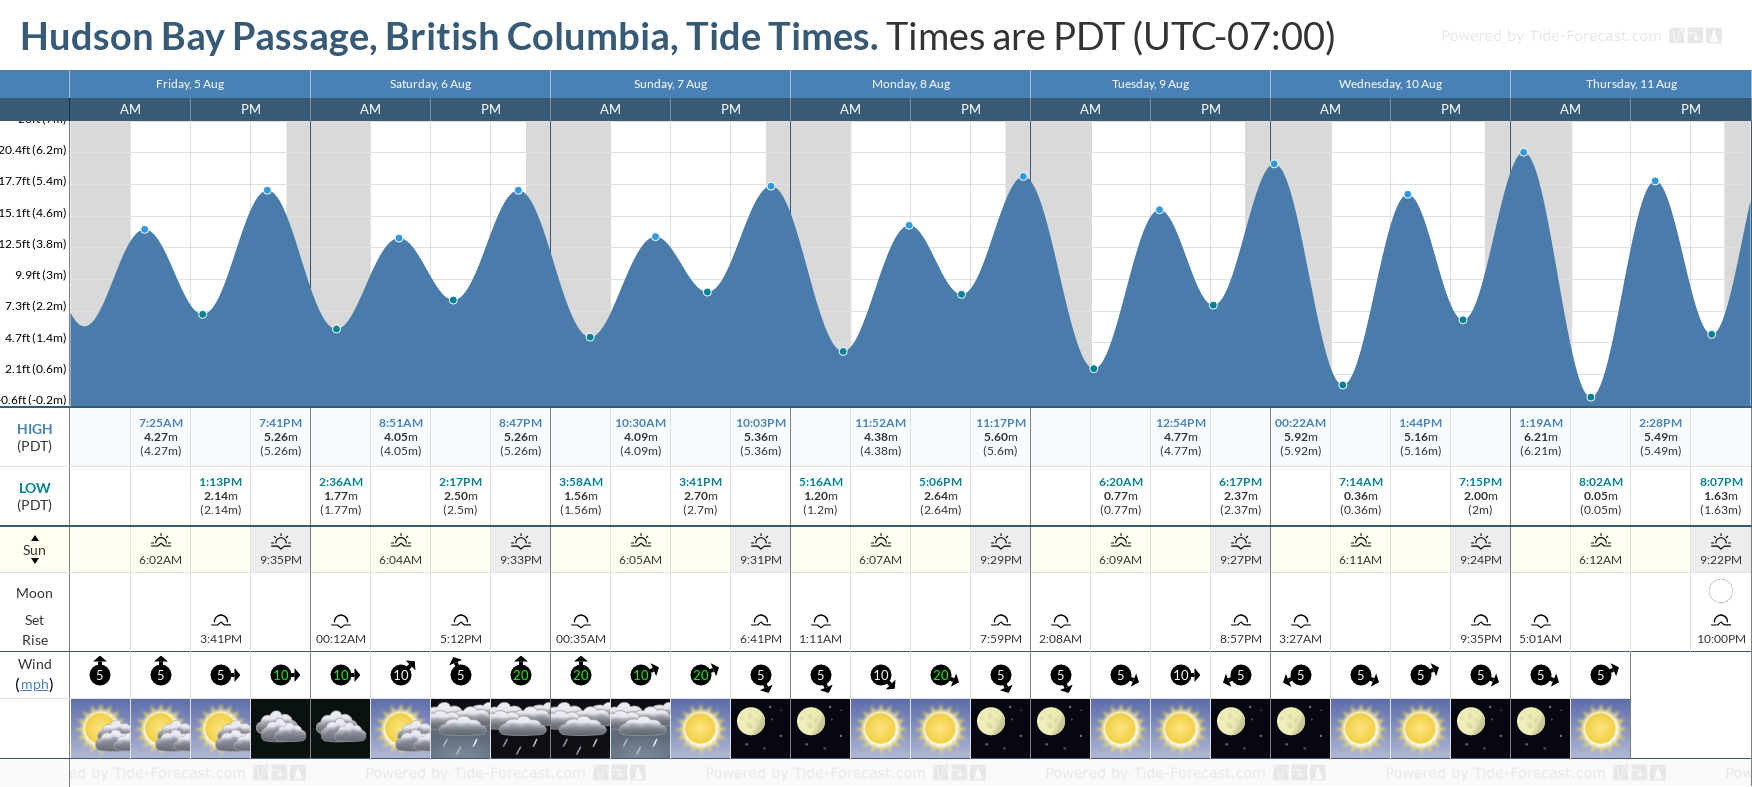 Hudson Bay Passage, British Columbia Tide Chart including high and low tide tide times for the next 7 days